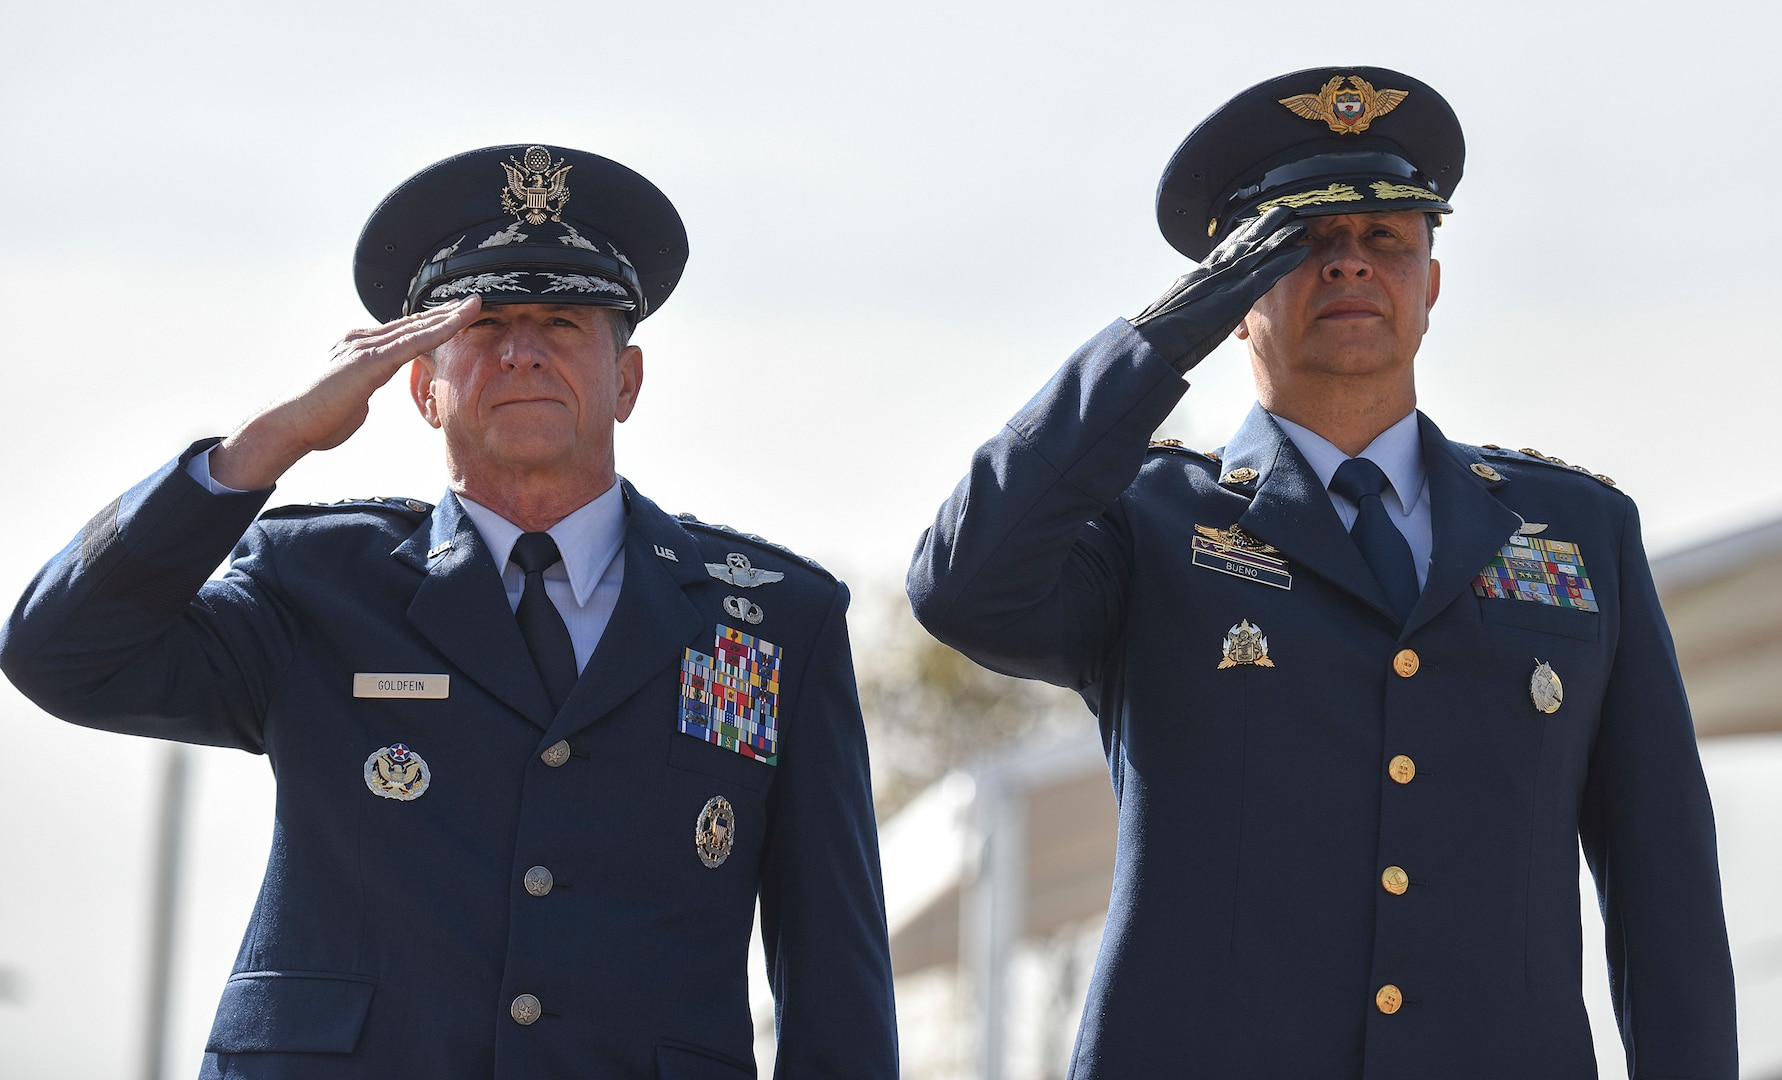 Air Force Chief of Staff Gen. David L. Goldfein and Commander of the Colombian Air Force General Carlos Eduardo Bueno Vargas salute during the Memorial Heroes Caidos en Combate in Bogota, Colombia, Nov. 15, 2018. Goldfein's visit to the country and U.S. engagement in the region reflect the enduring promise of friendship, partnership and solidarity between the Americas. (U.S. Air Force photo by Tech Sgt. Anthony Nelson Jr.)